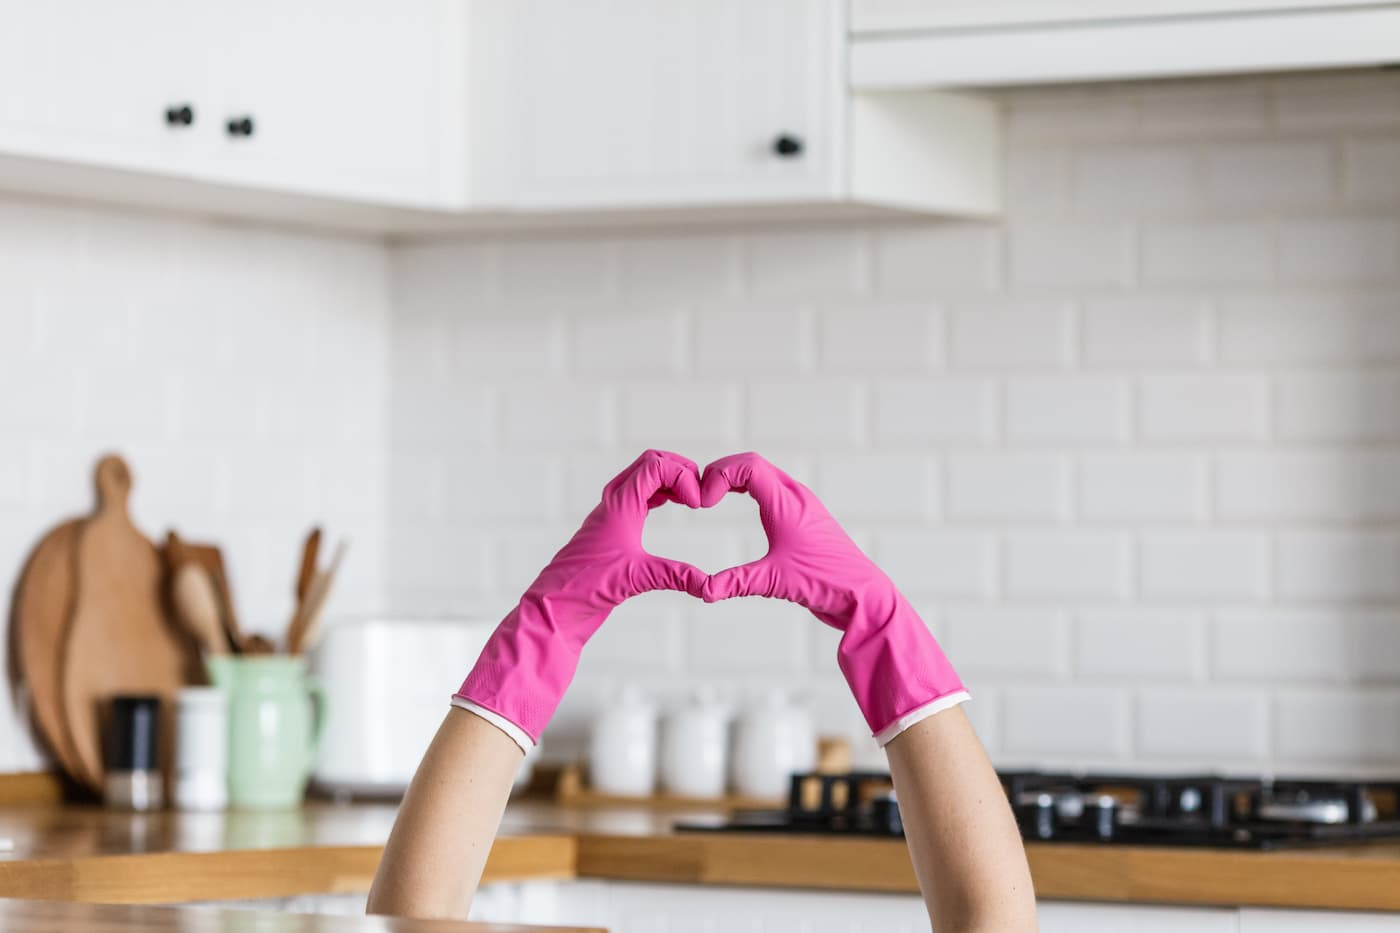 hand with rubber gloves making a heart shape